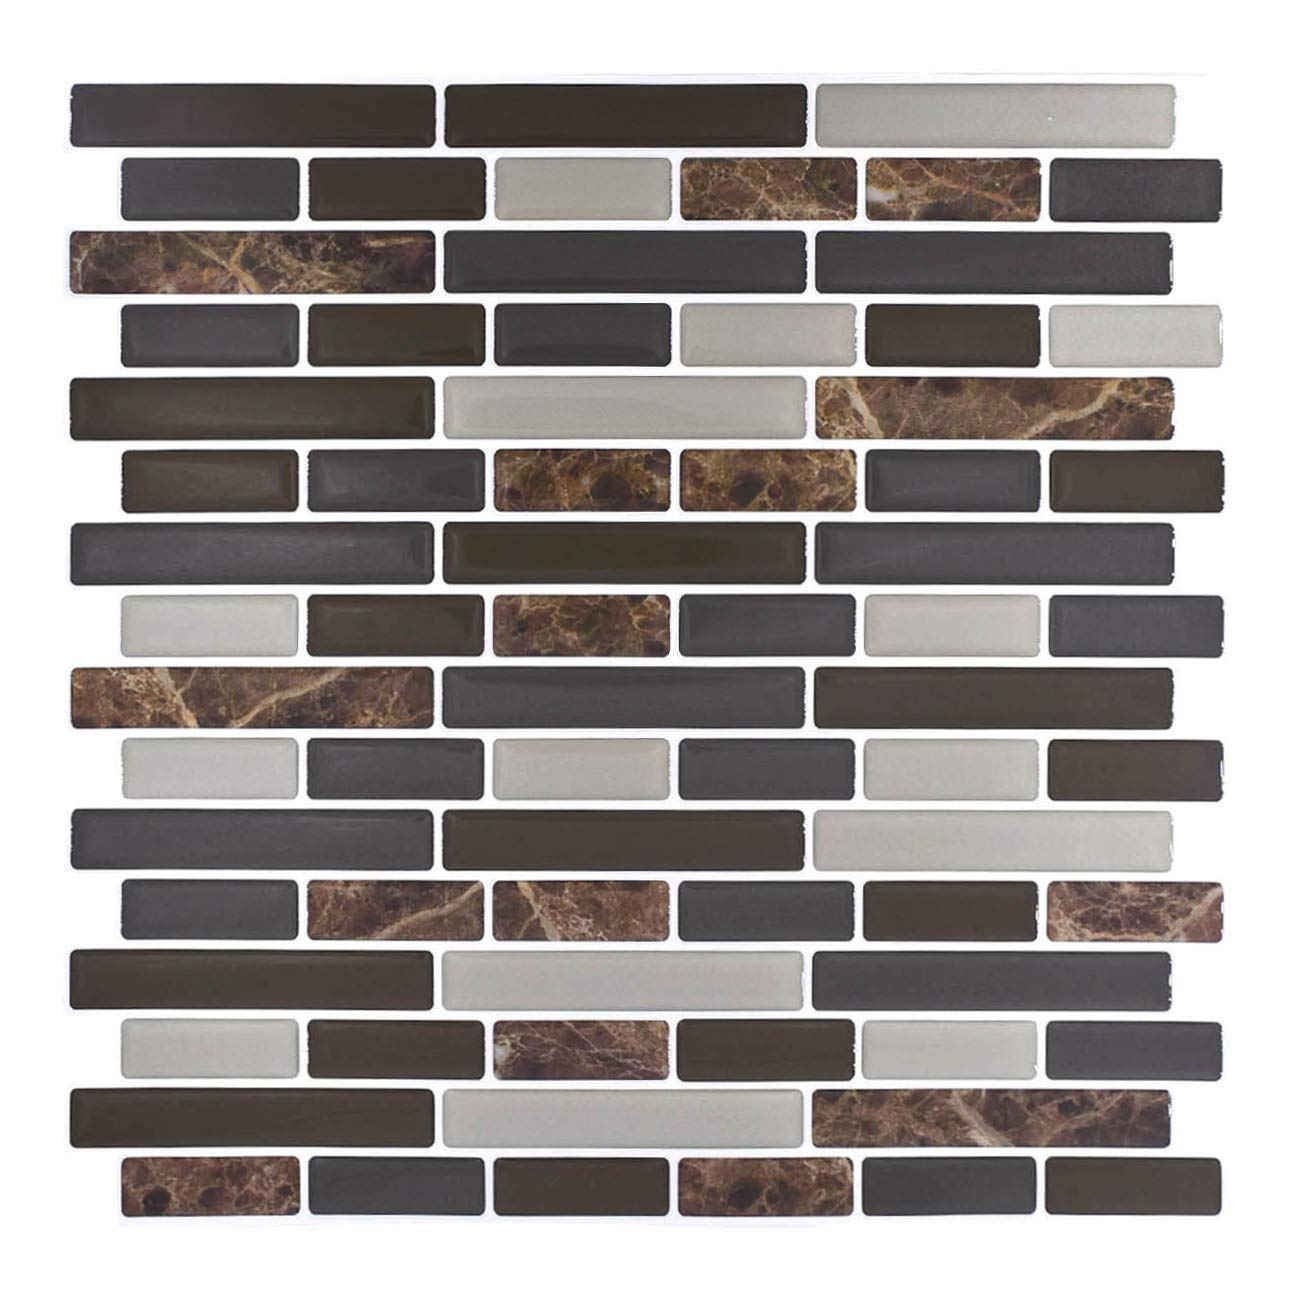 "Peel and Stick Backsplash,HONJAN Renters Groutless Removable Adhesive Vinyl Muretto Brina Backsplash Tiles for Kitchen Bathroom 10""x10"" Pack of 13 (A)"